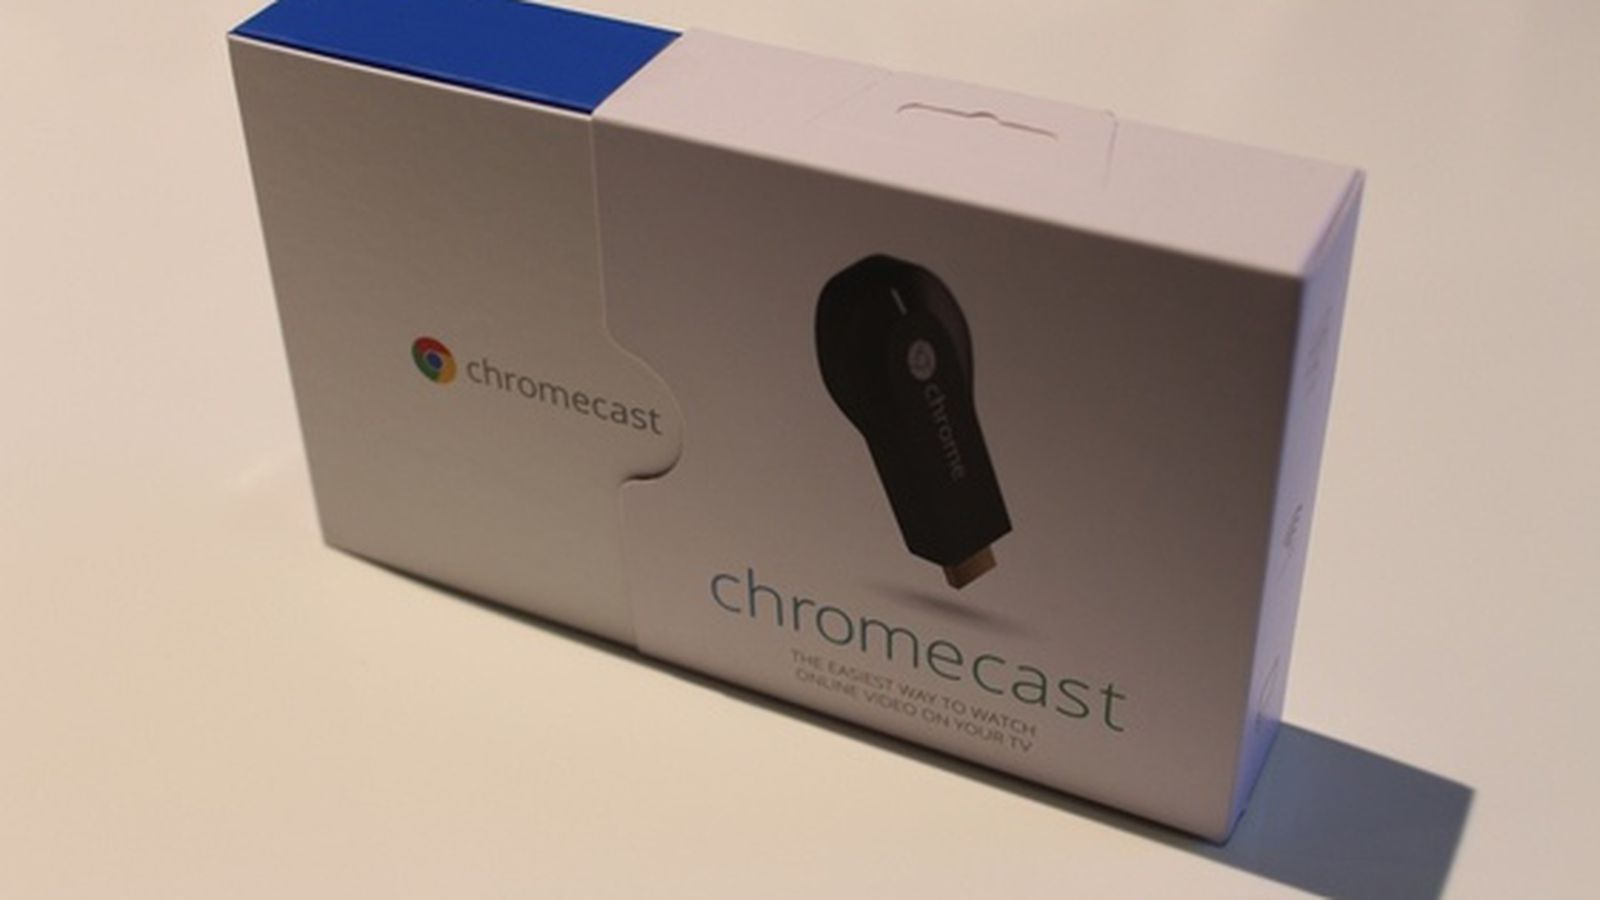 Vox Now Chromecast